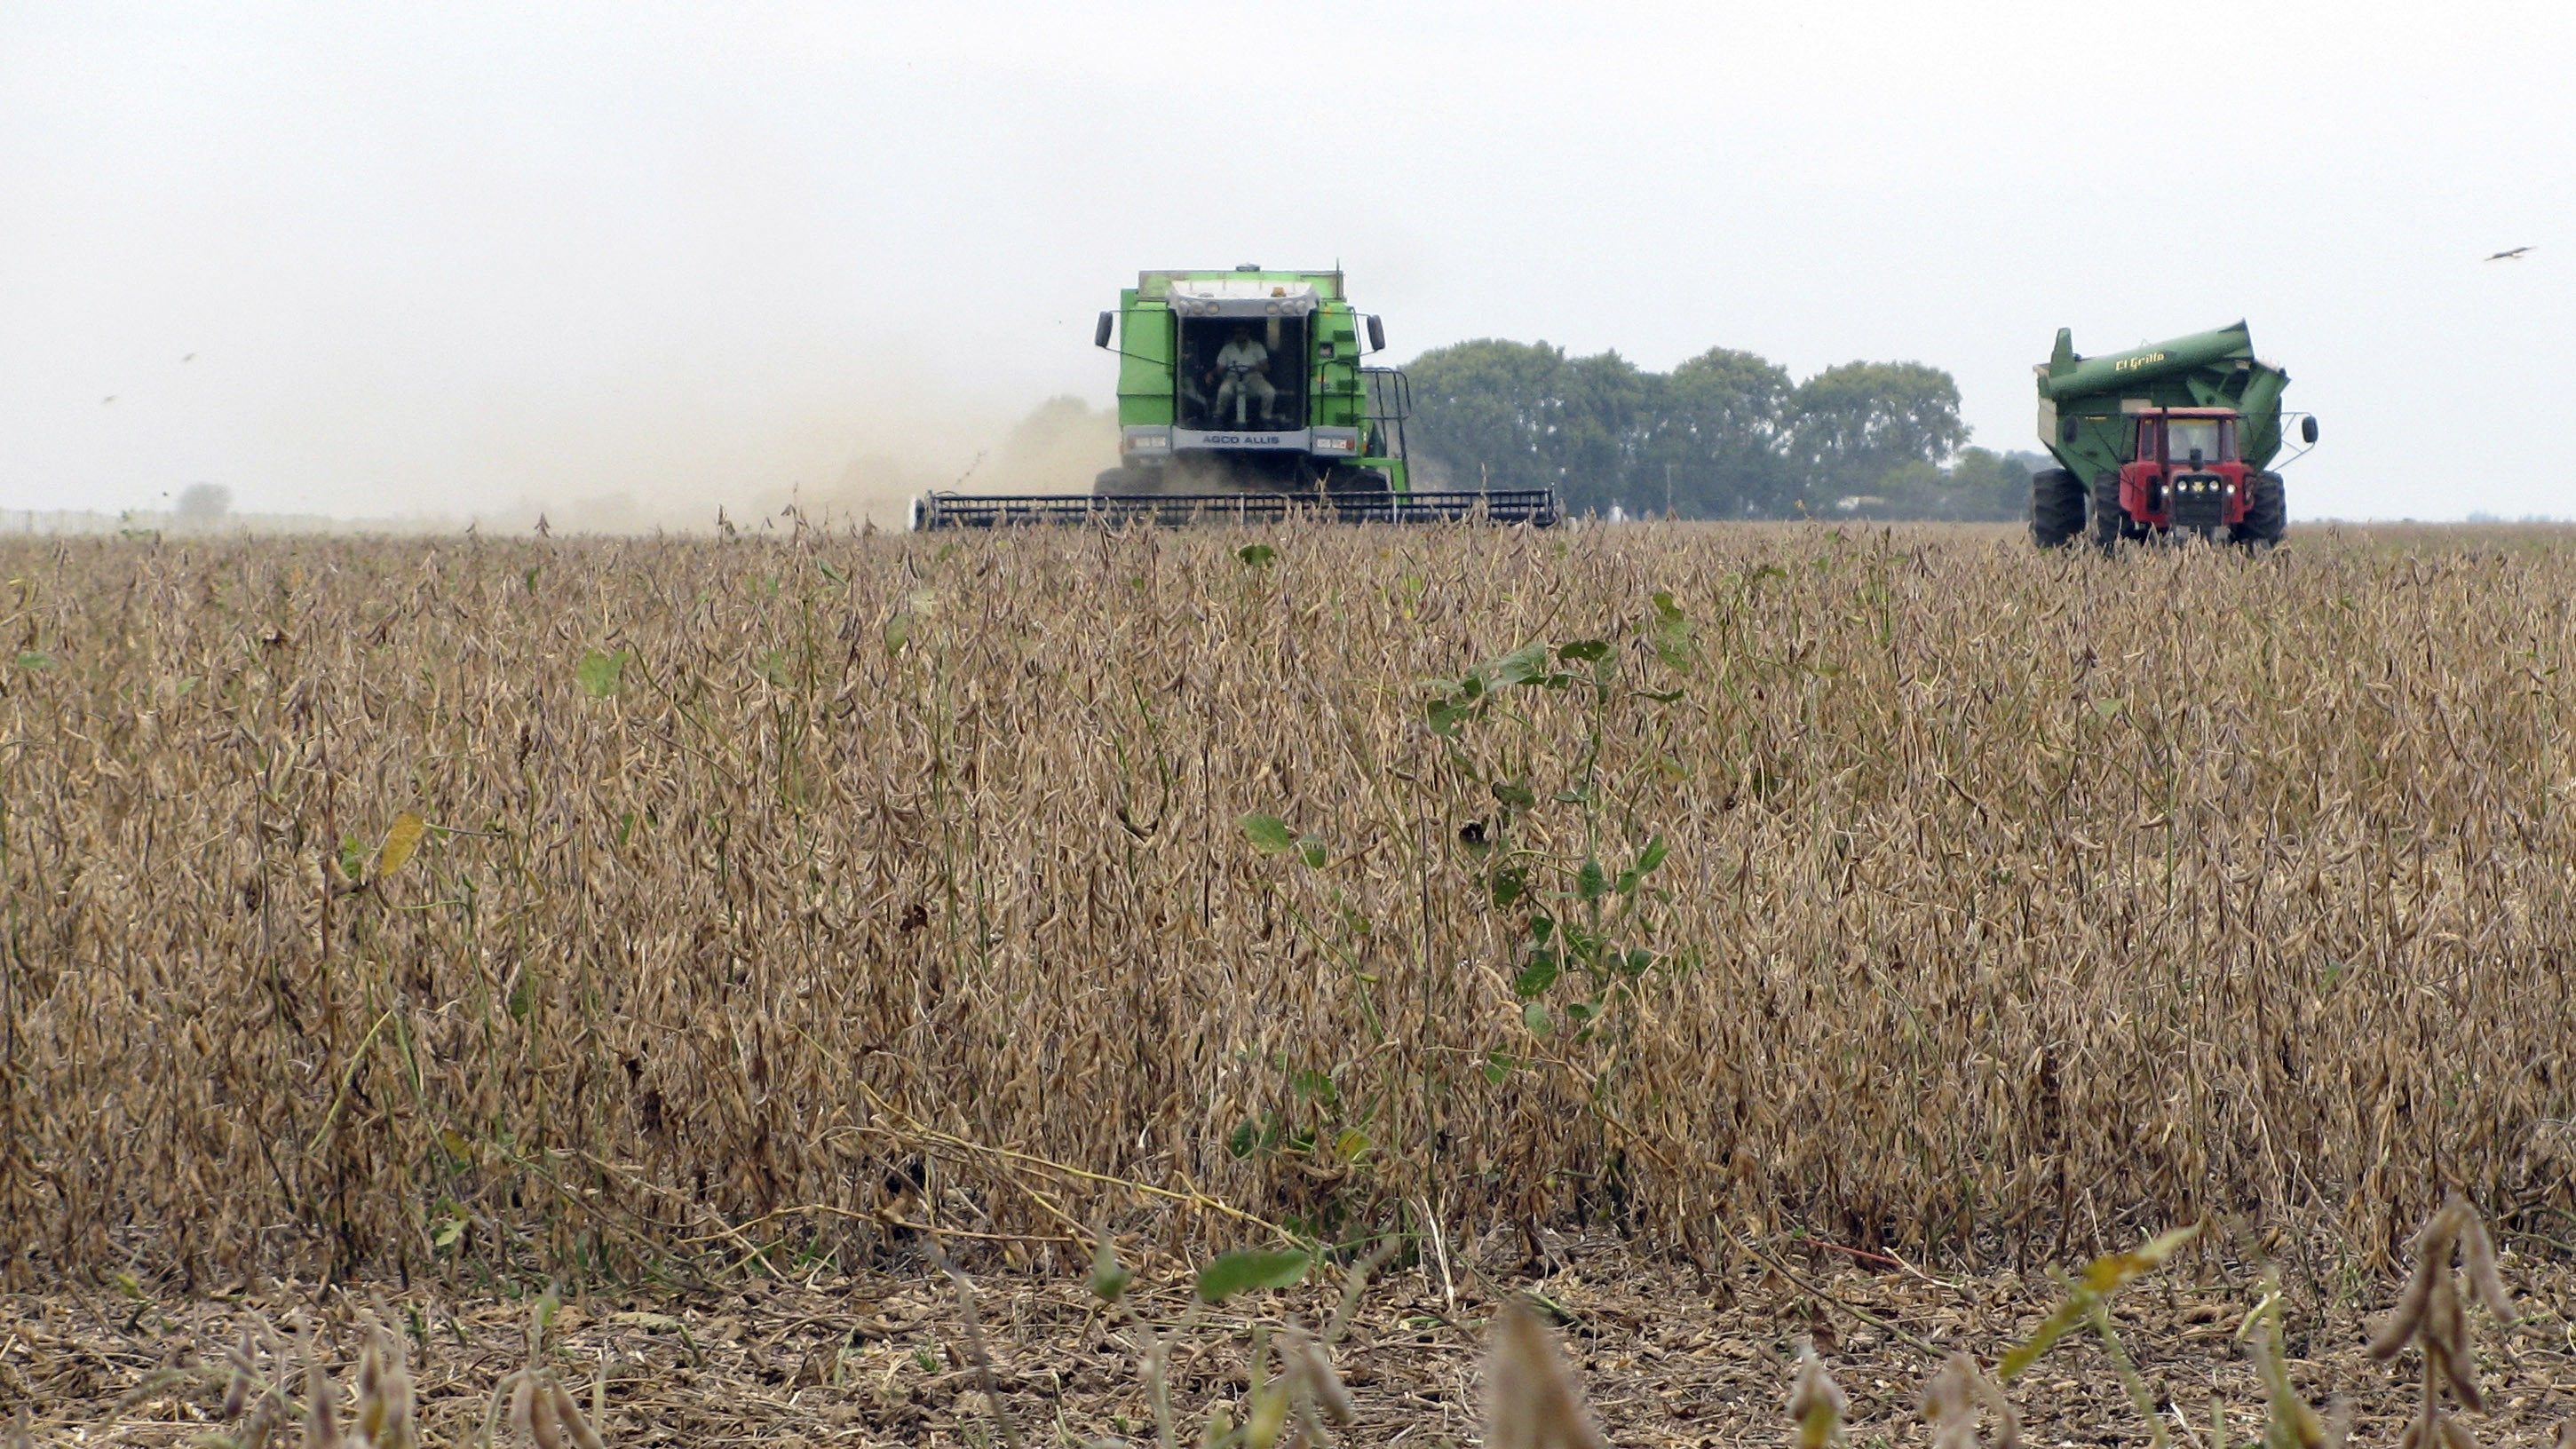 The Most Widely Used Herbicide in the United States Could Cause Cancer in Humans, Says a World Health Organization Study